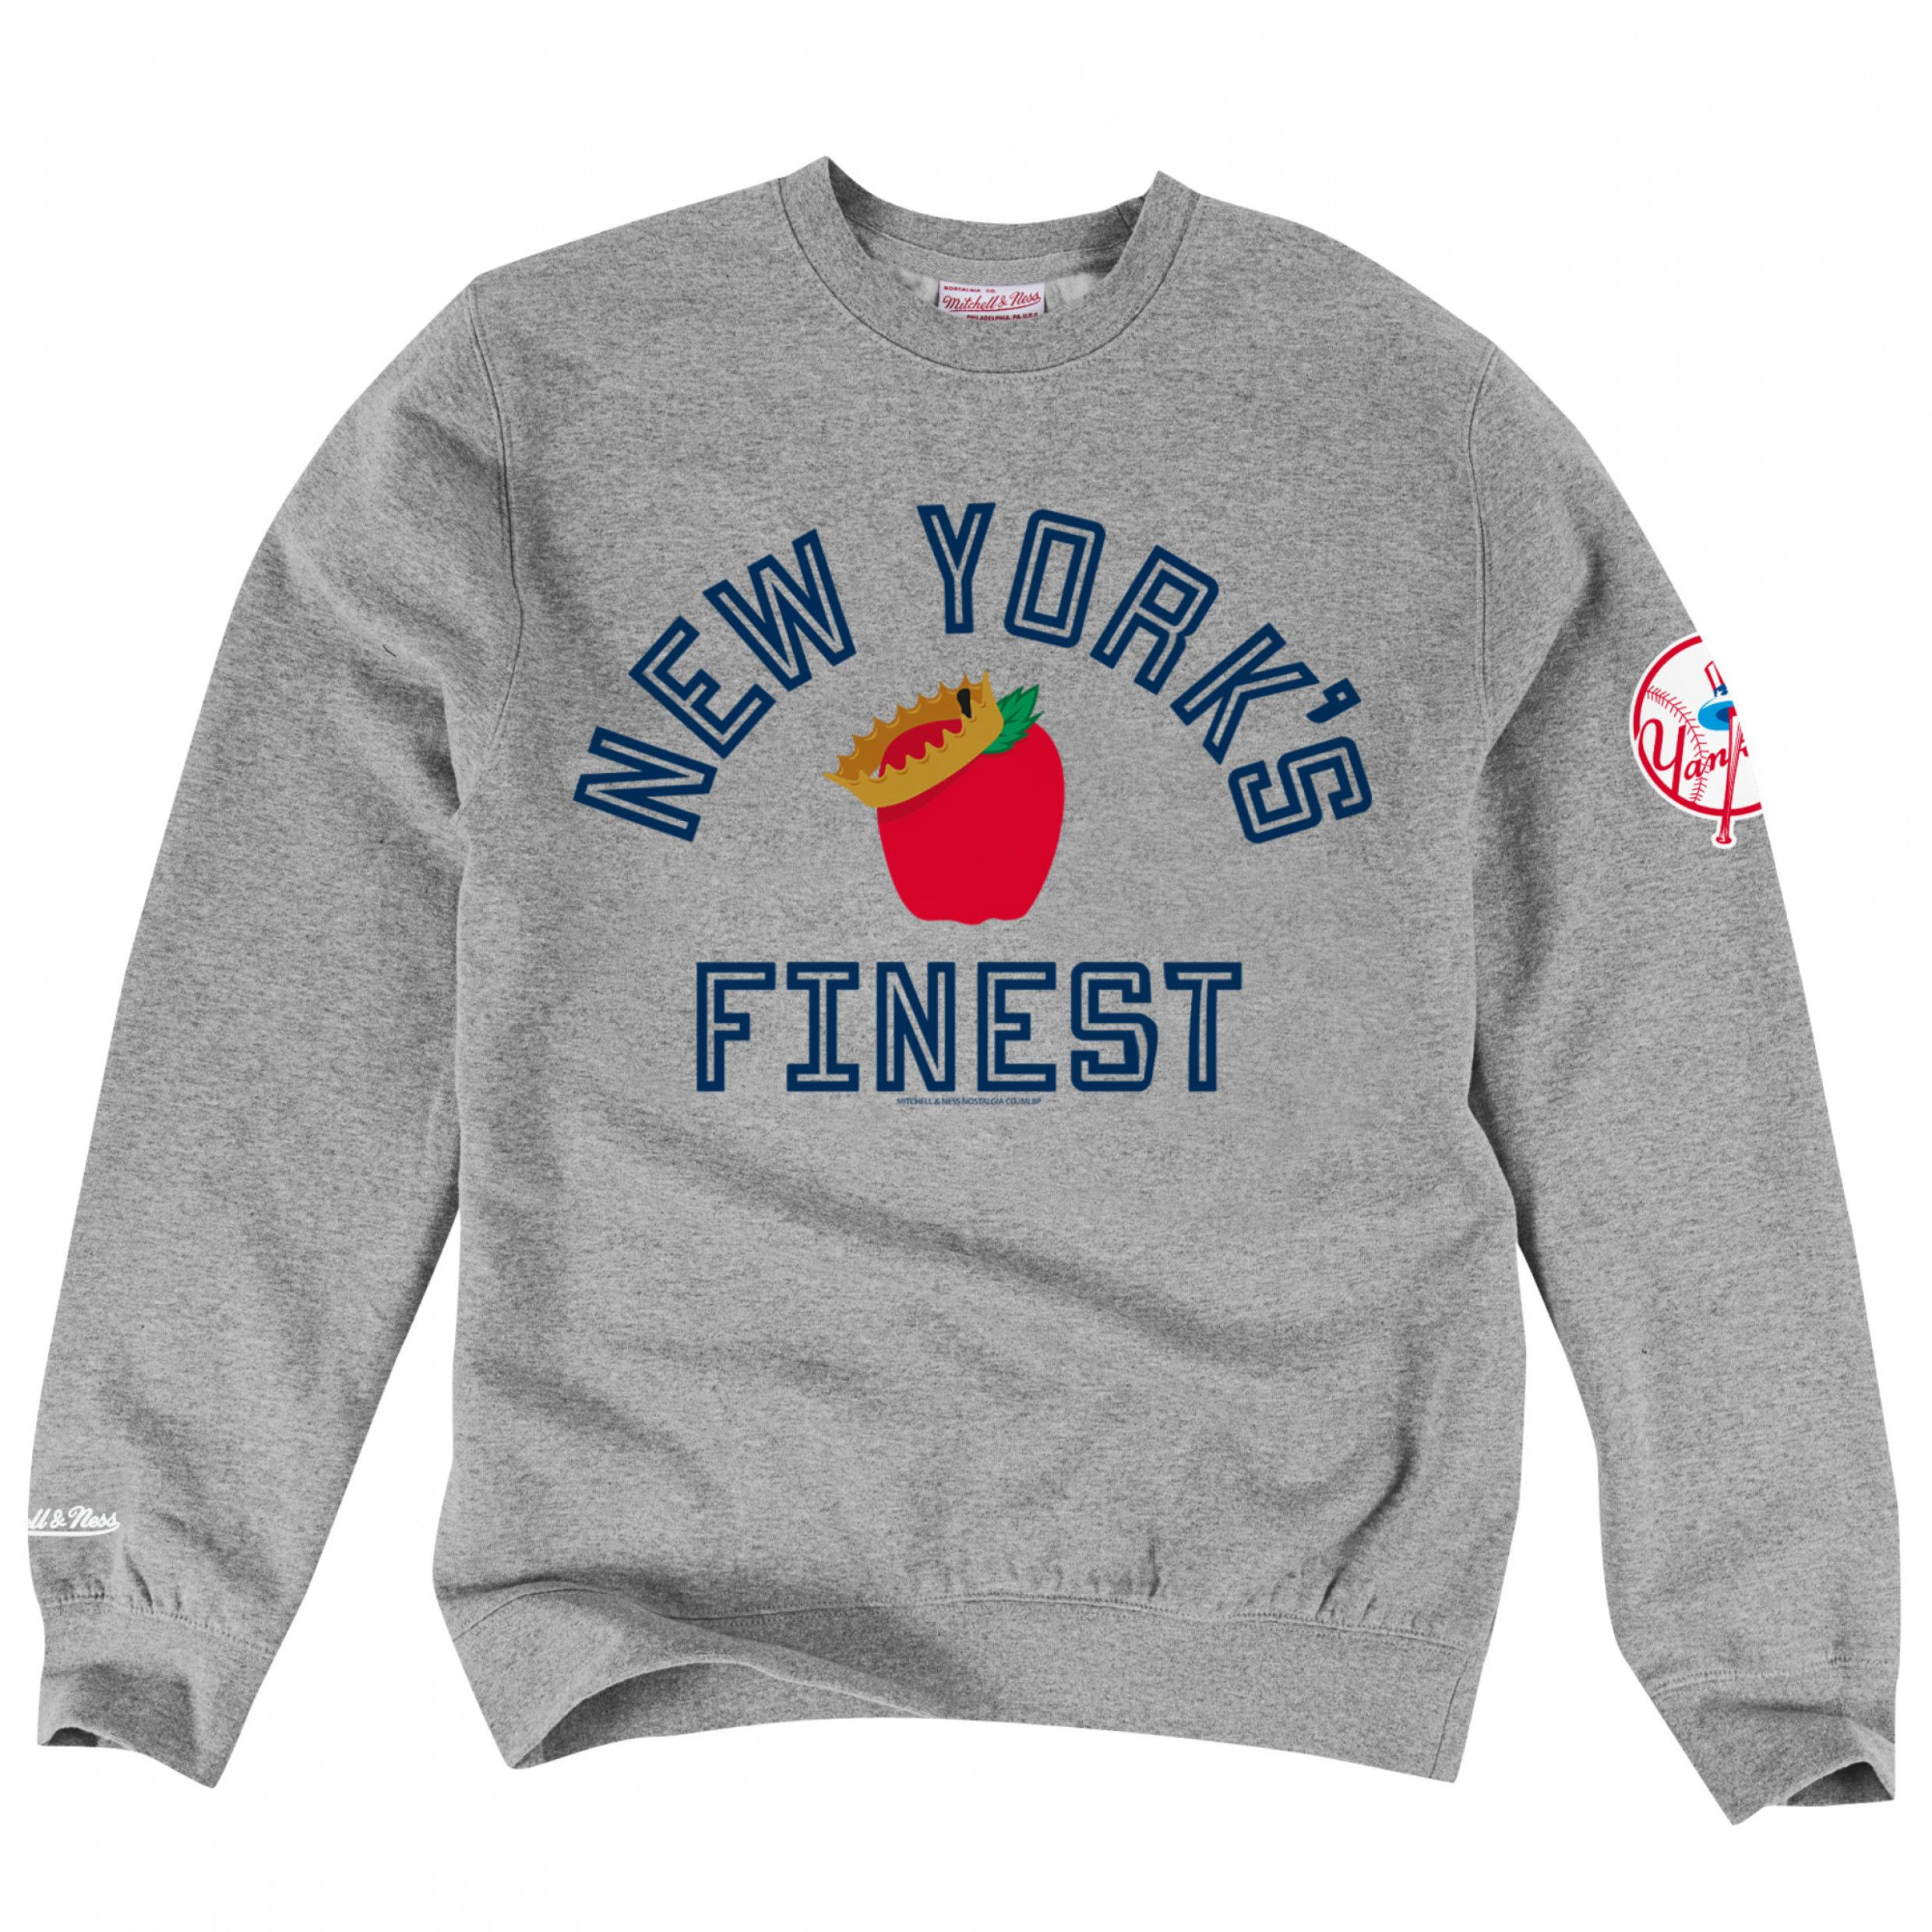 info for 1ddc7 934ce New York's Finest Crew New York Yankees Mitchell & Ness ...